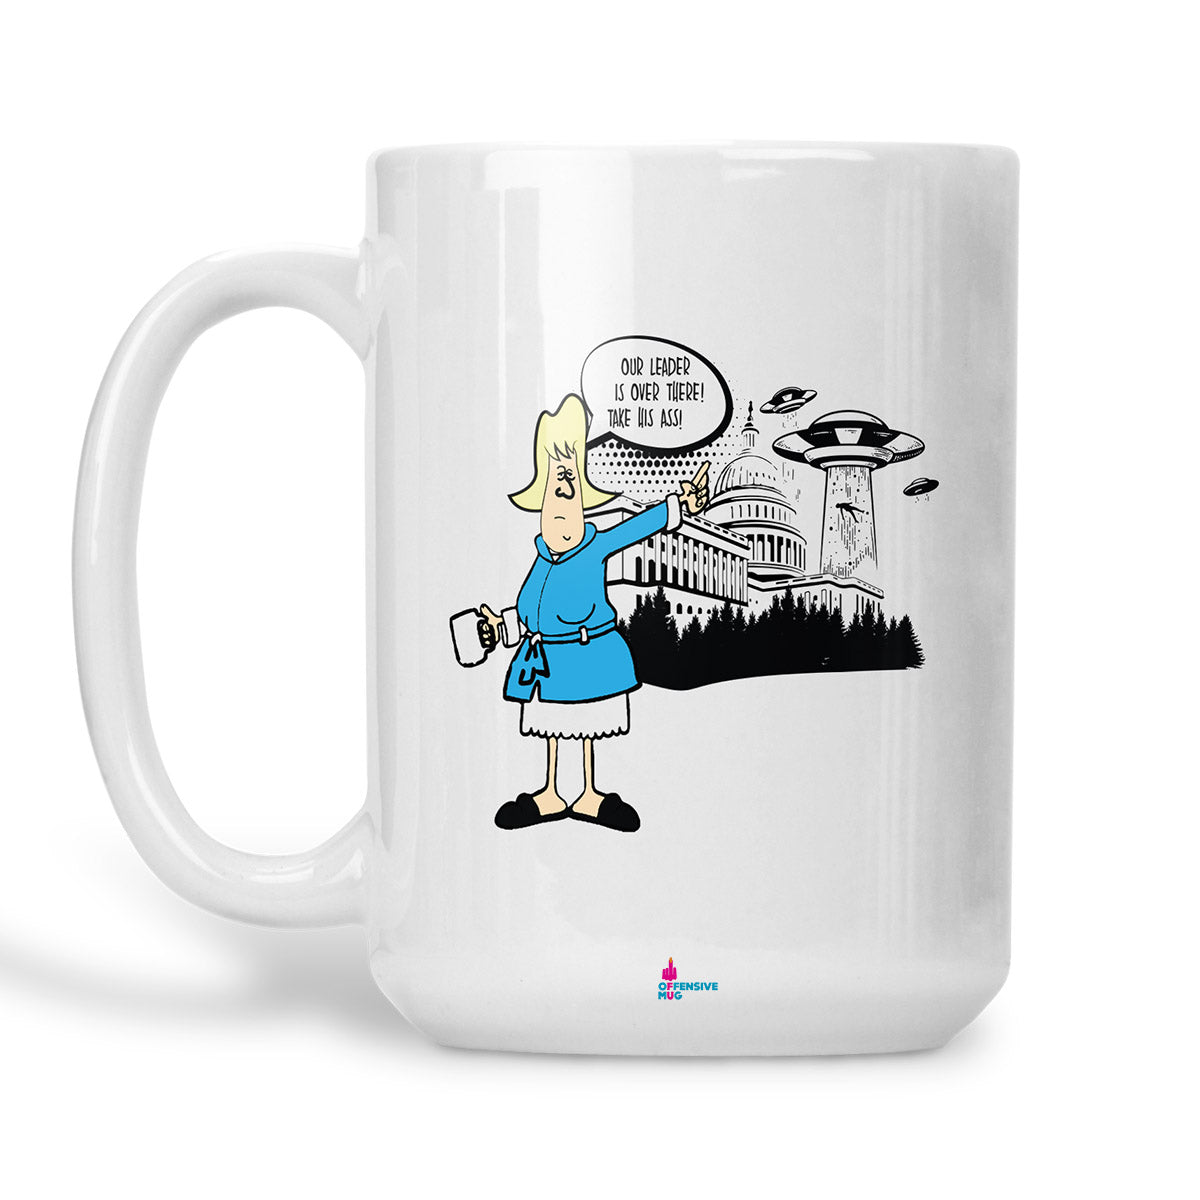 Donny - Offensive Mug